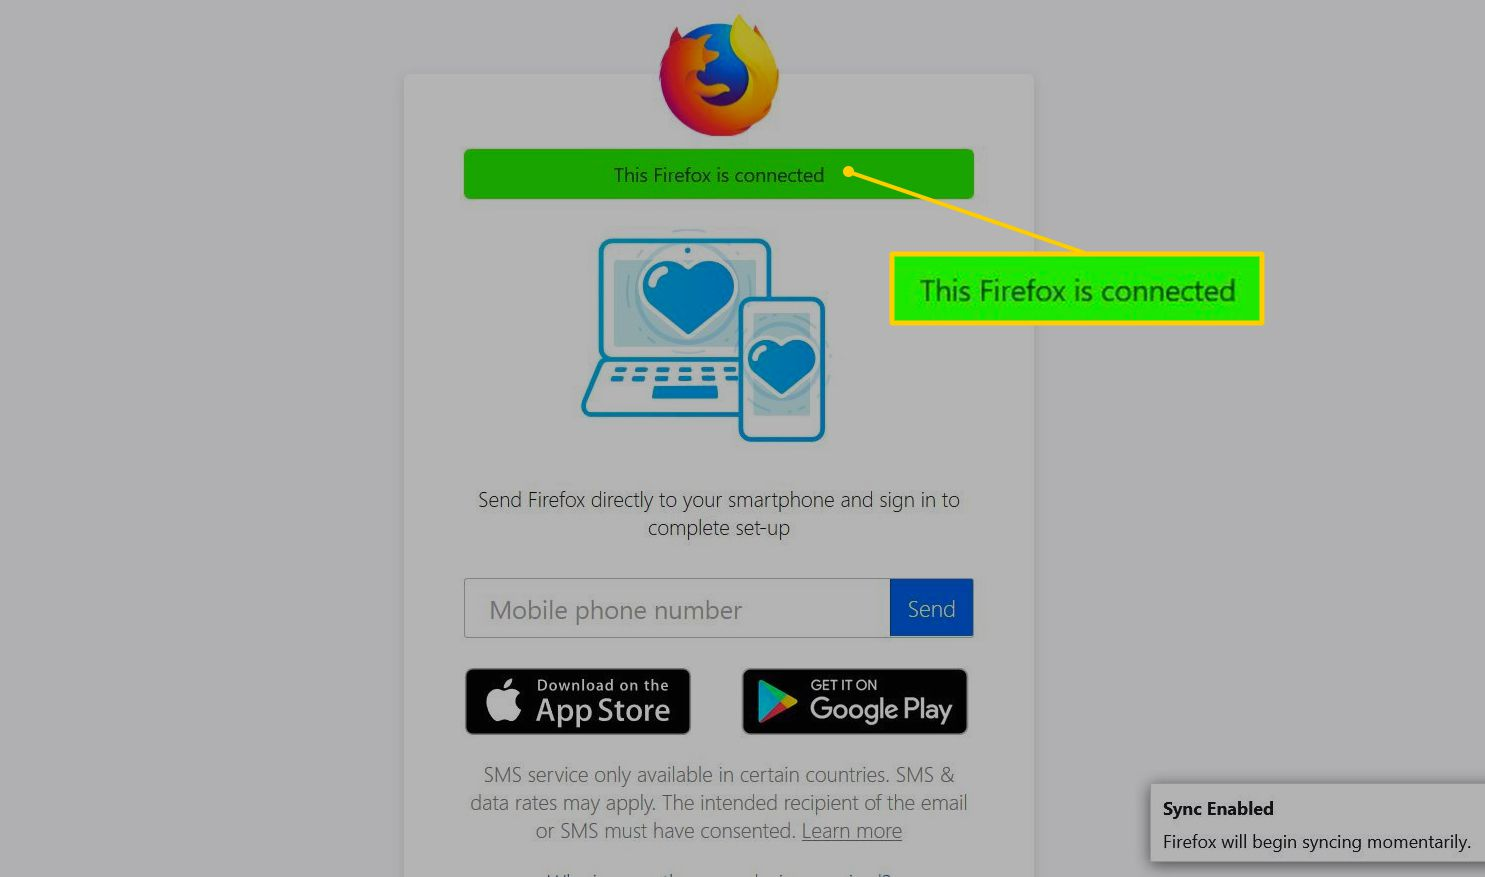 Firefox Sync: What It Is And How to Use It